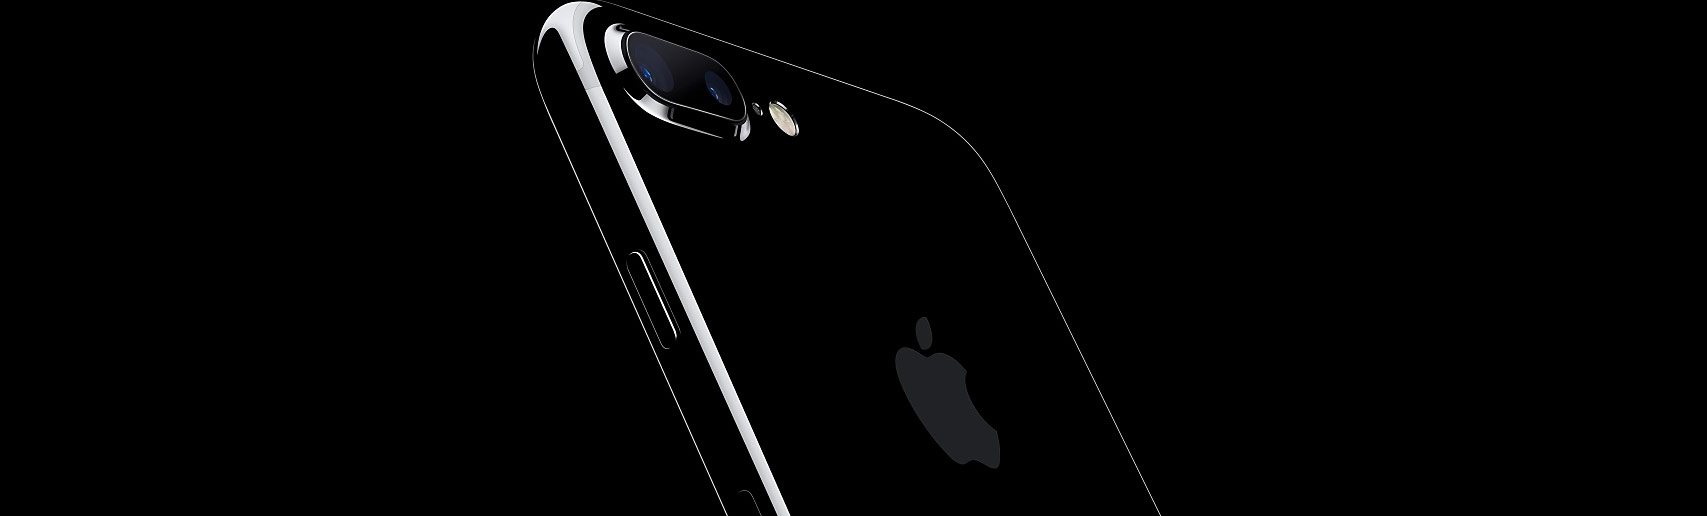 Apple is Now Selling Refurbished iPhone 7 and iPhone 7 Plus Models